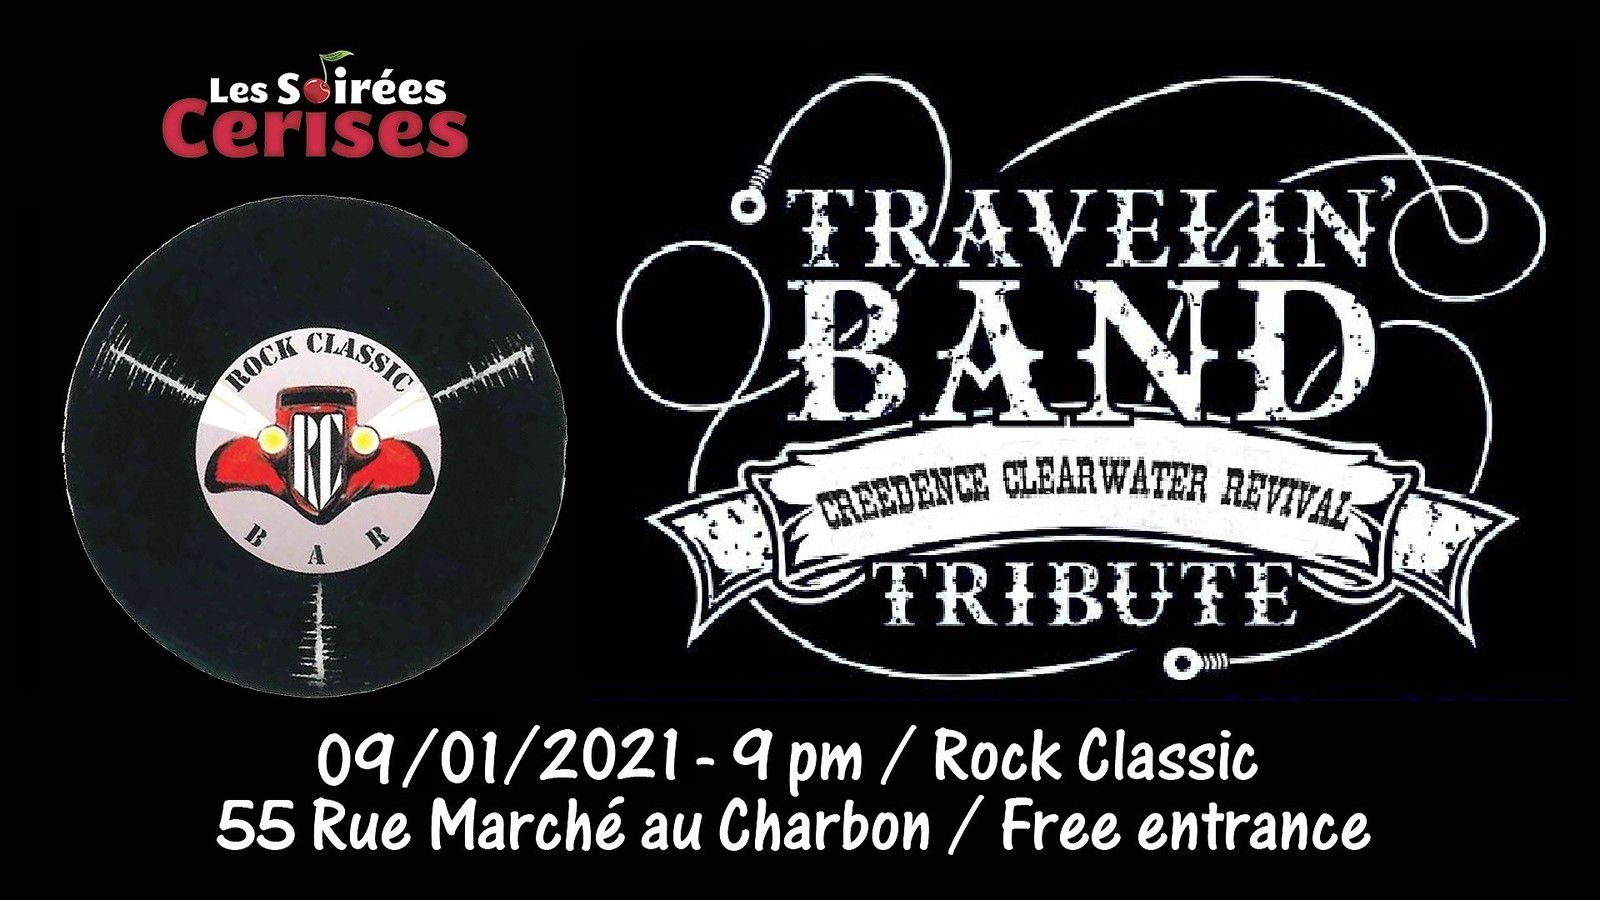 🎵 Travelin' band ( Creedence Clearwater Revival tribute band ) @ Rock Classic - 09/01/2021 - 21h00 - Entrée gratuite / Free entrance